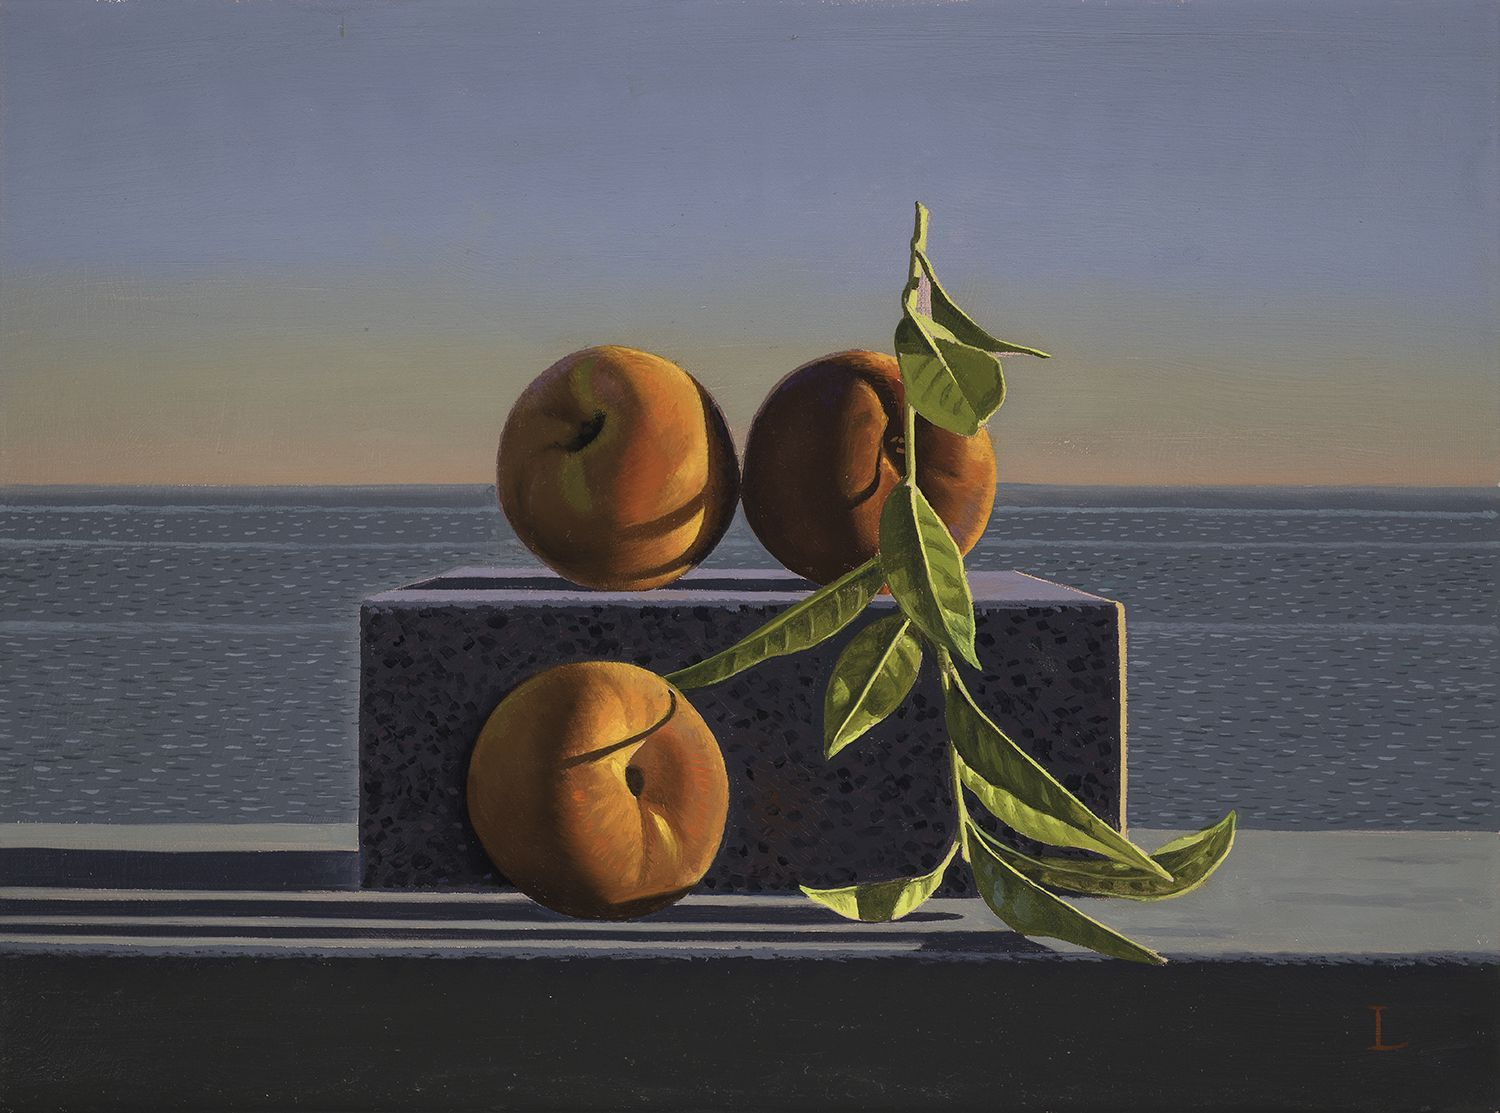 David Ligare (b. 1945), Still Life with Peaches and Leaves, 2018